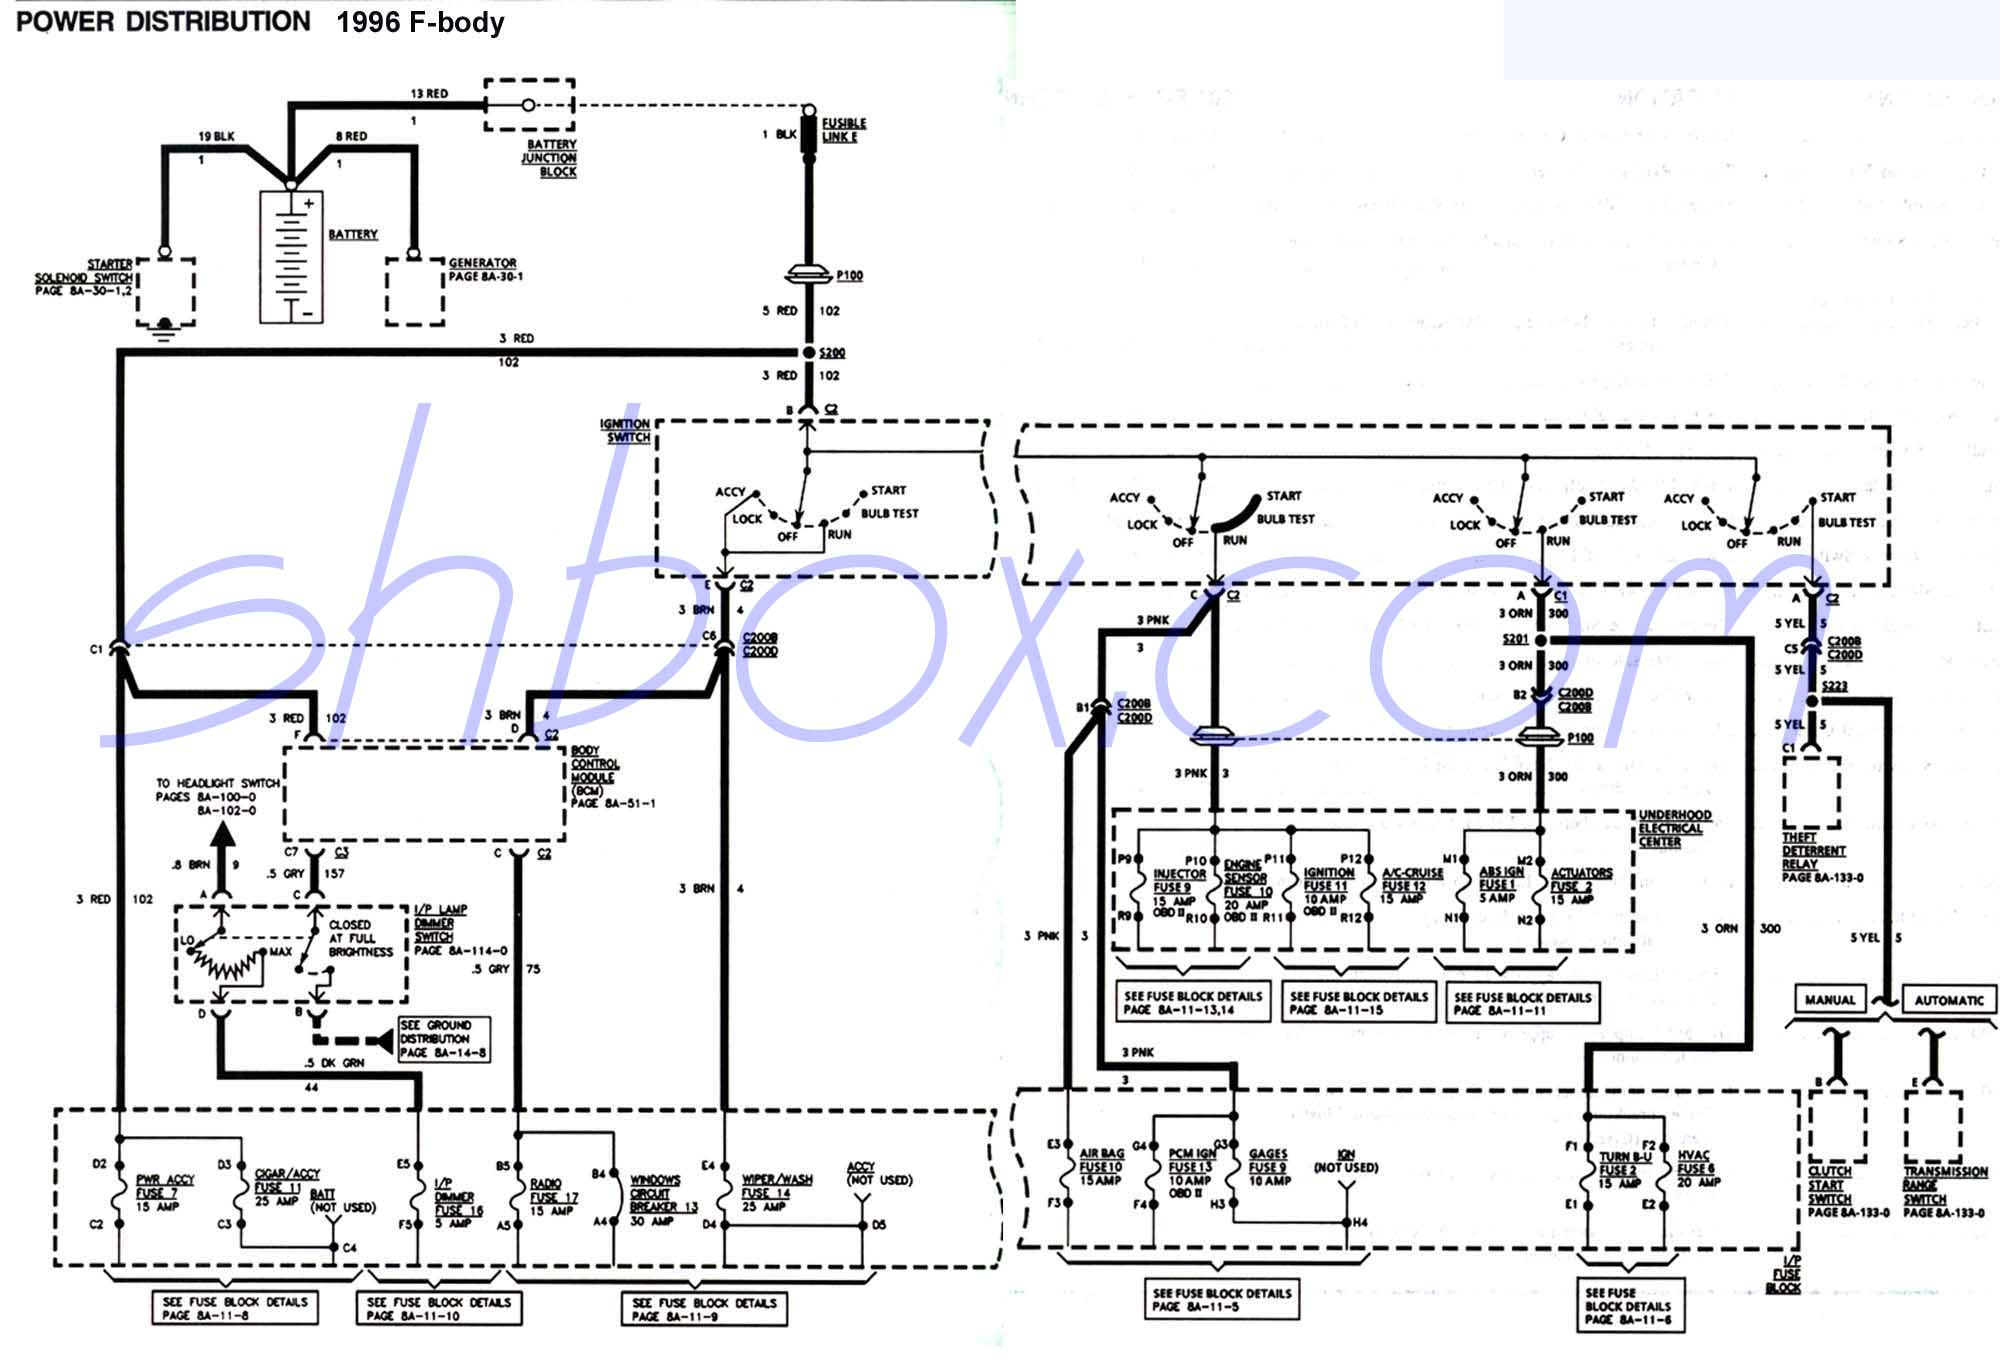 hight resolution of 4th gen lt1 f body tech aidsignition switch schematic 1996